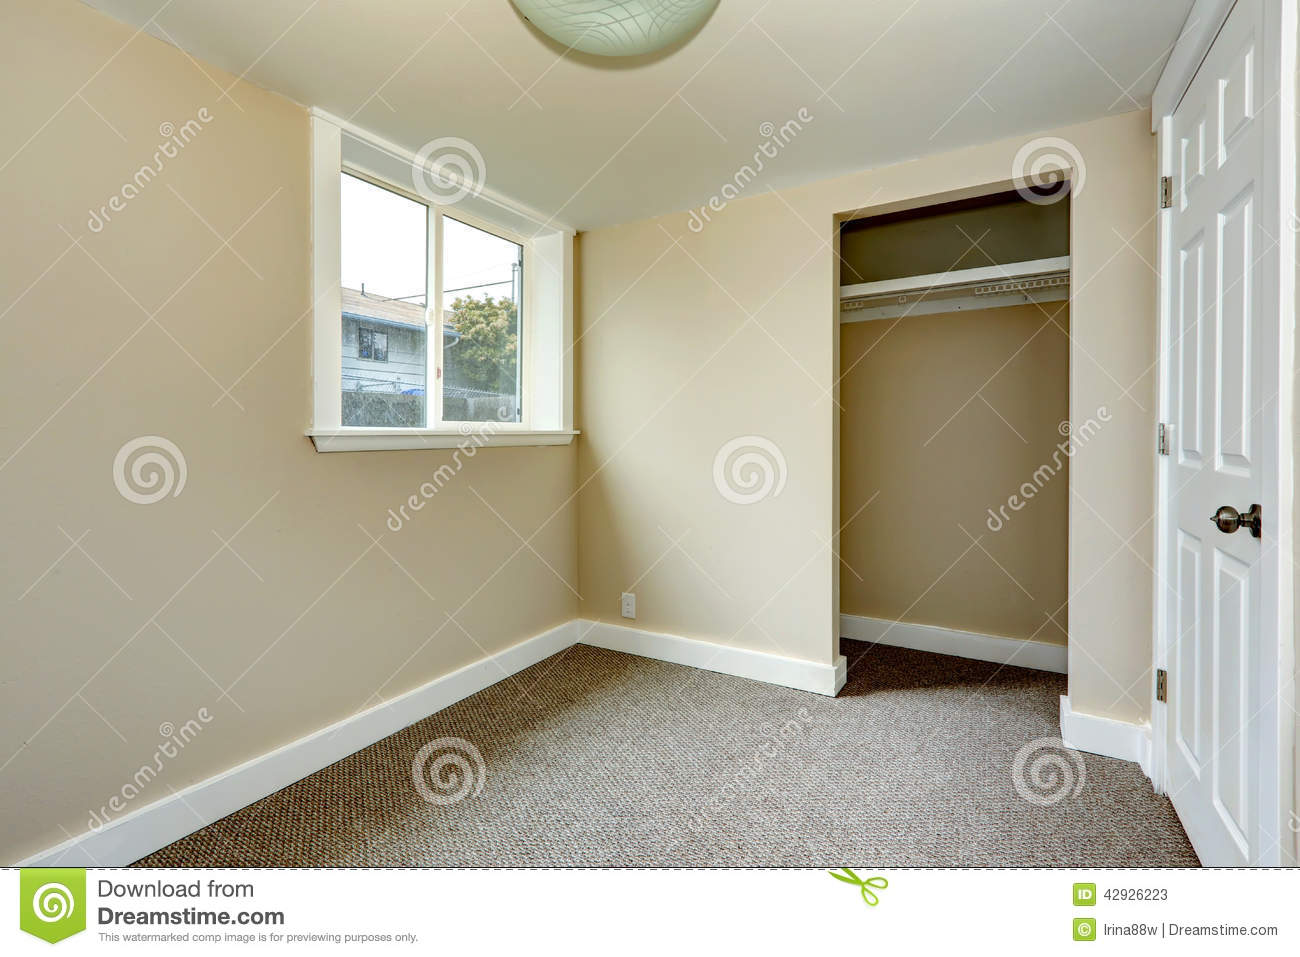 Empty Room With Closet Stock Image